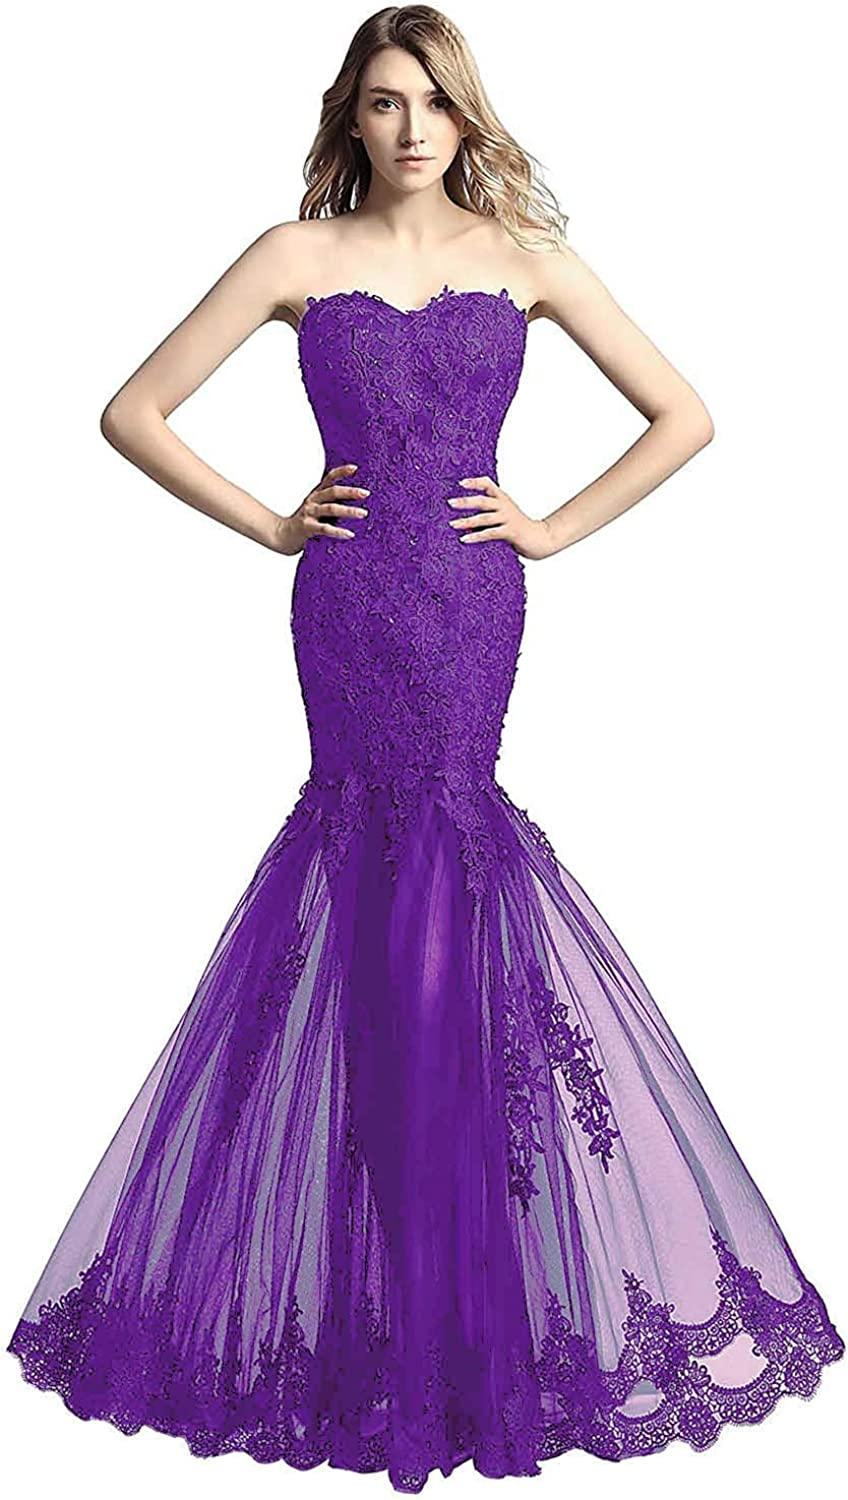 ANFF Women's Strapless Appliques Tulle Long Prom Gowns Mermaid Formal Evening Dresses